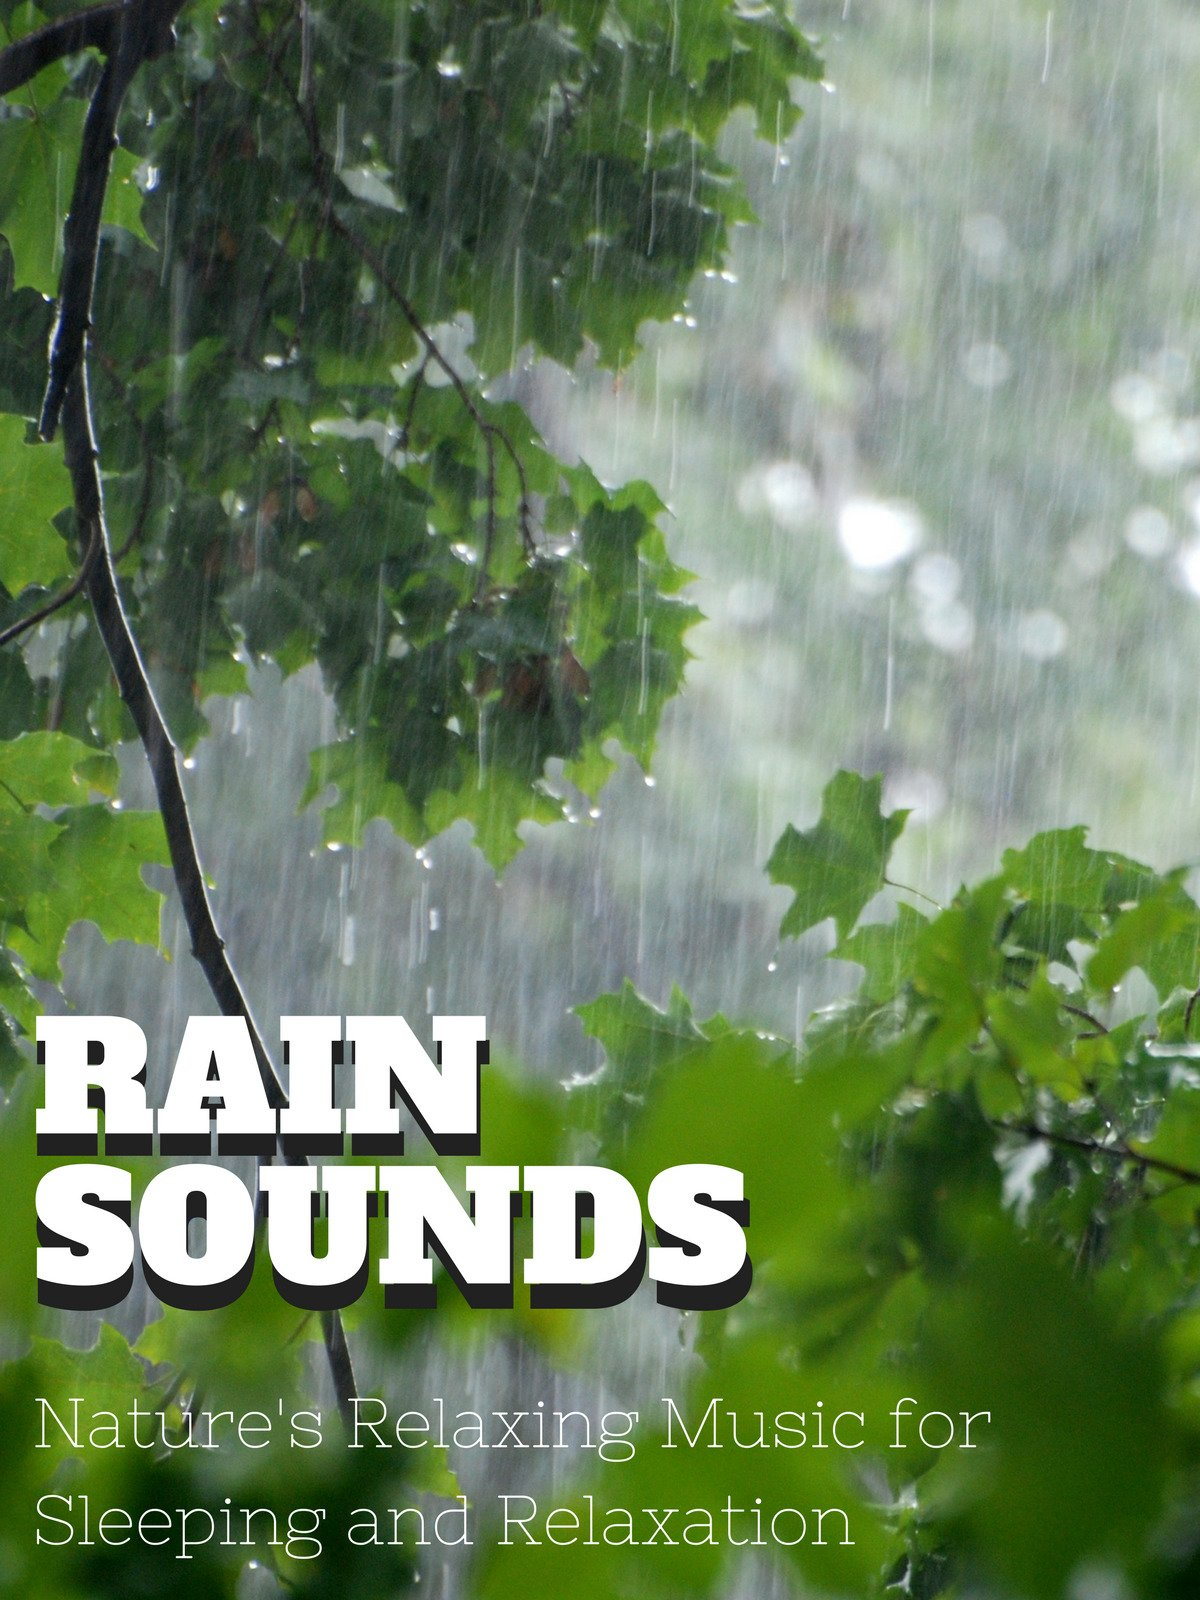 Rain Sounds, Nature's Relaxing Music for Sleeping and Relaxation